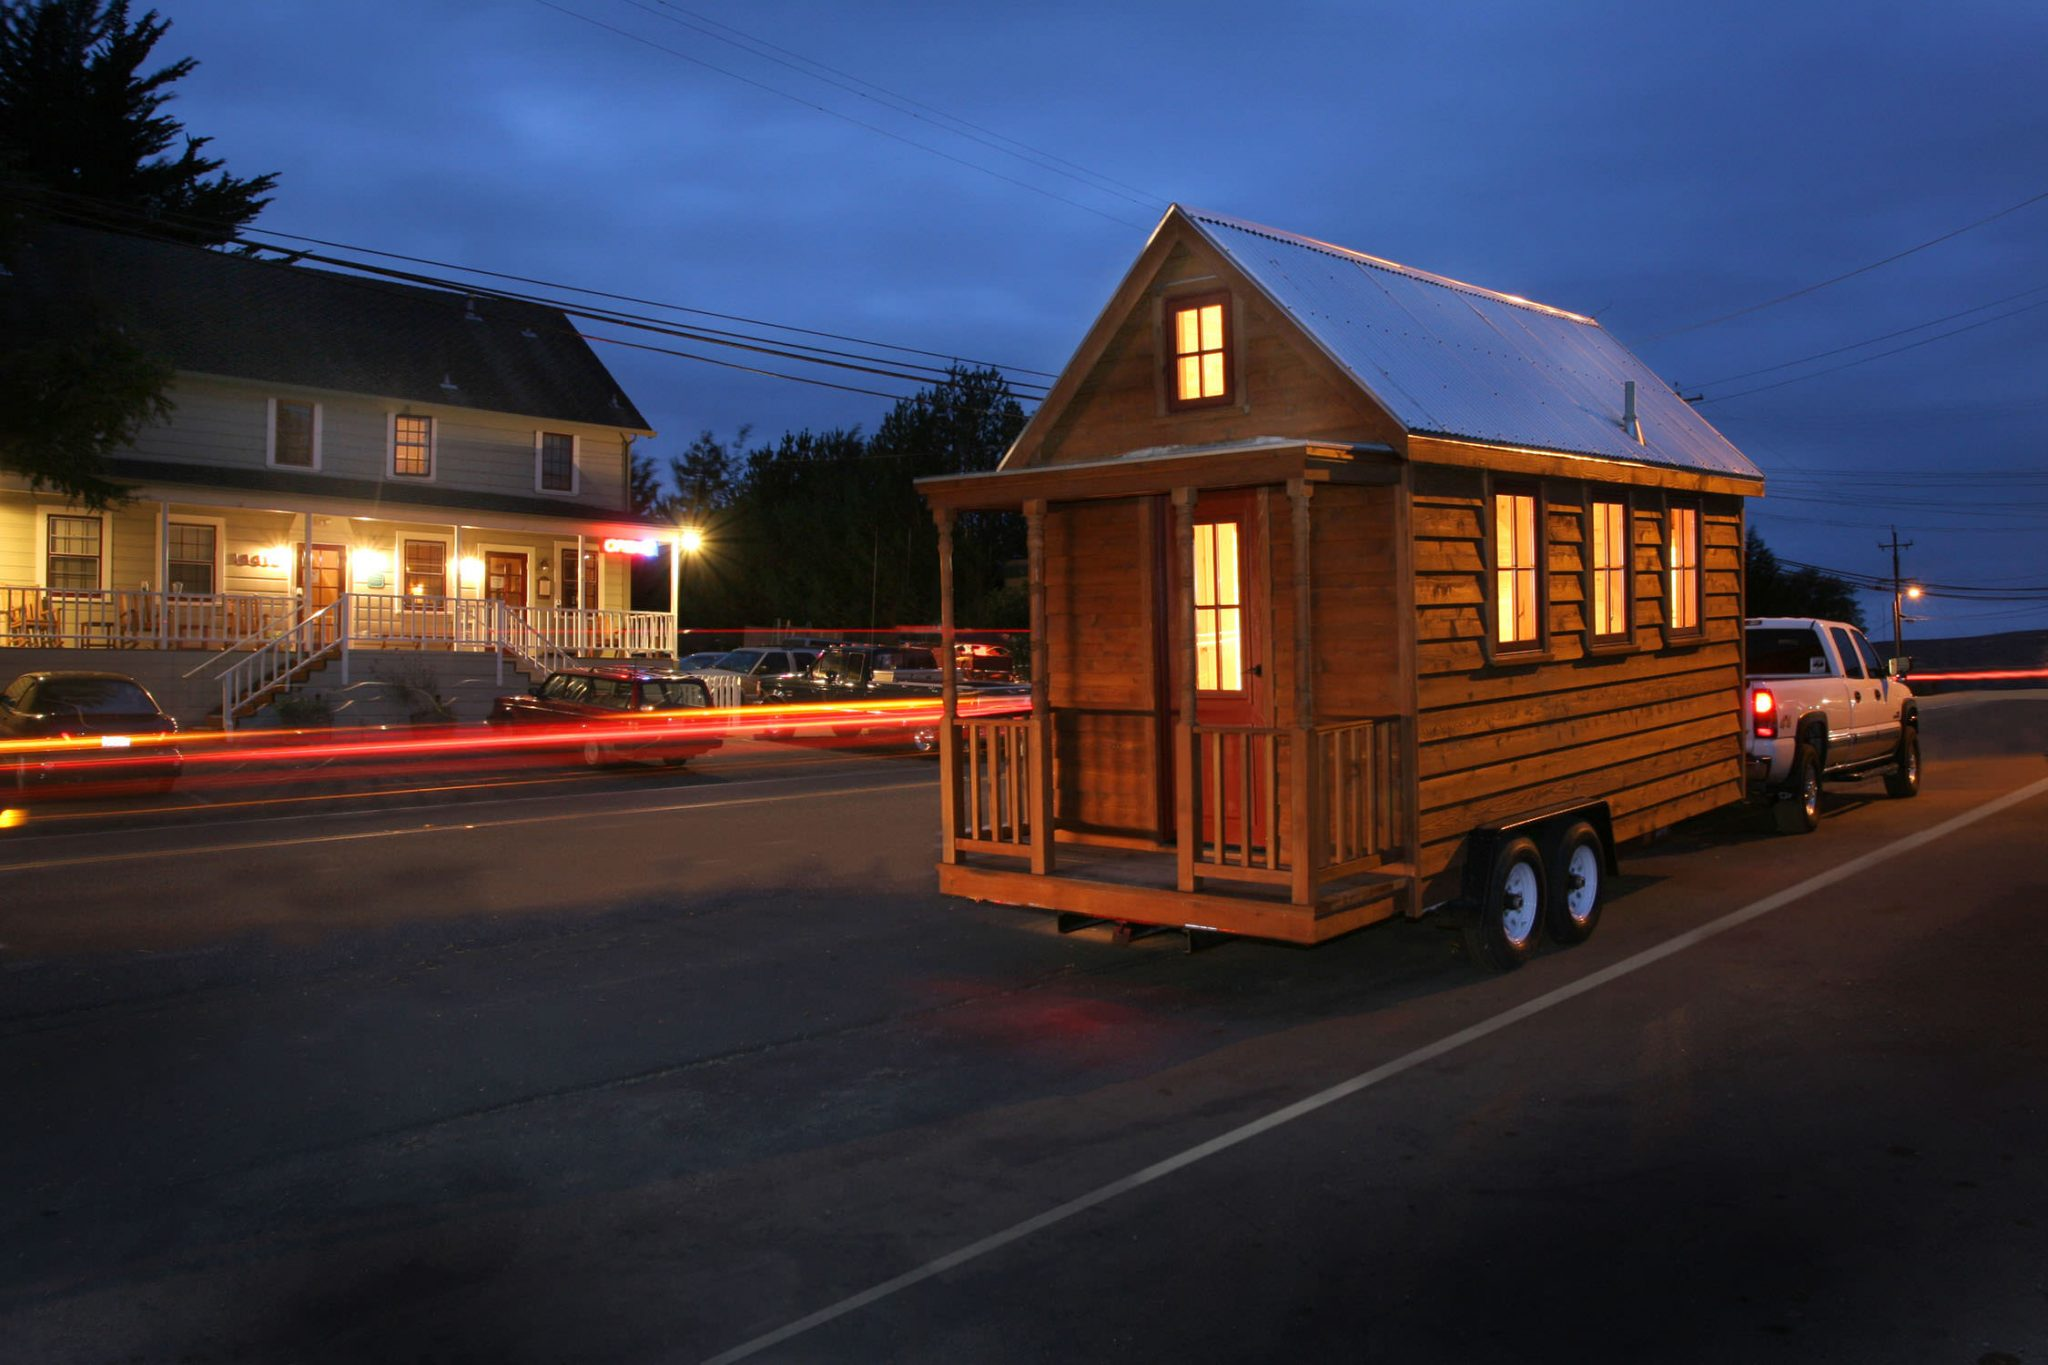 Caf Racer 76 The Tumbleweed Tiny House Company